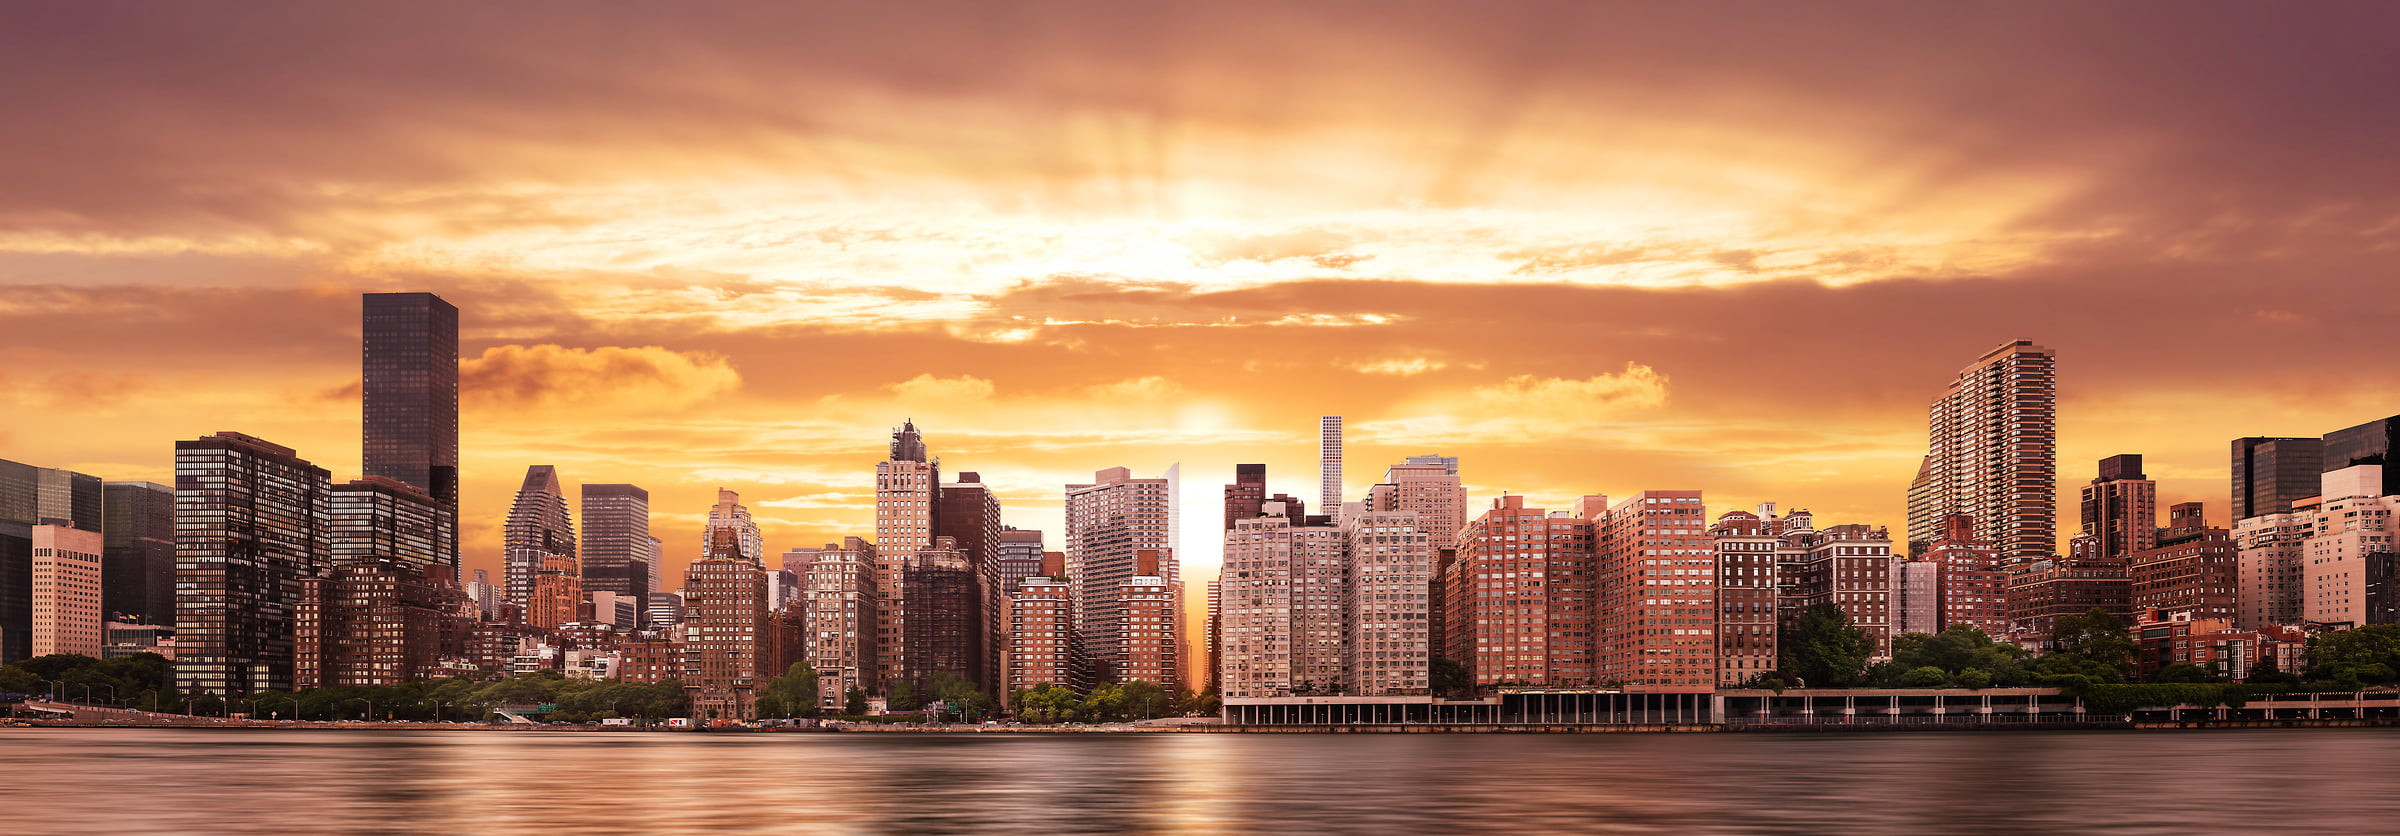 New York Skyline Sunset Photos Large Format Fine Art